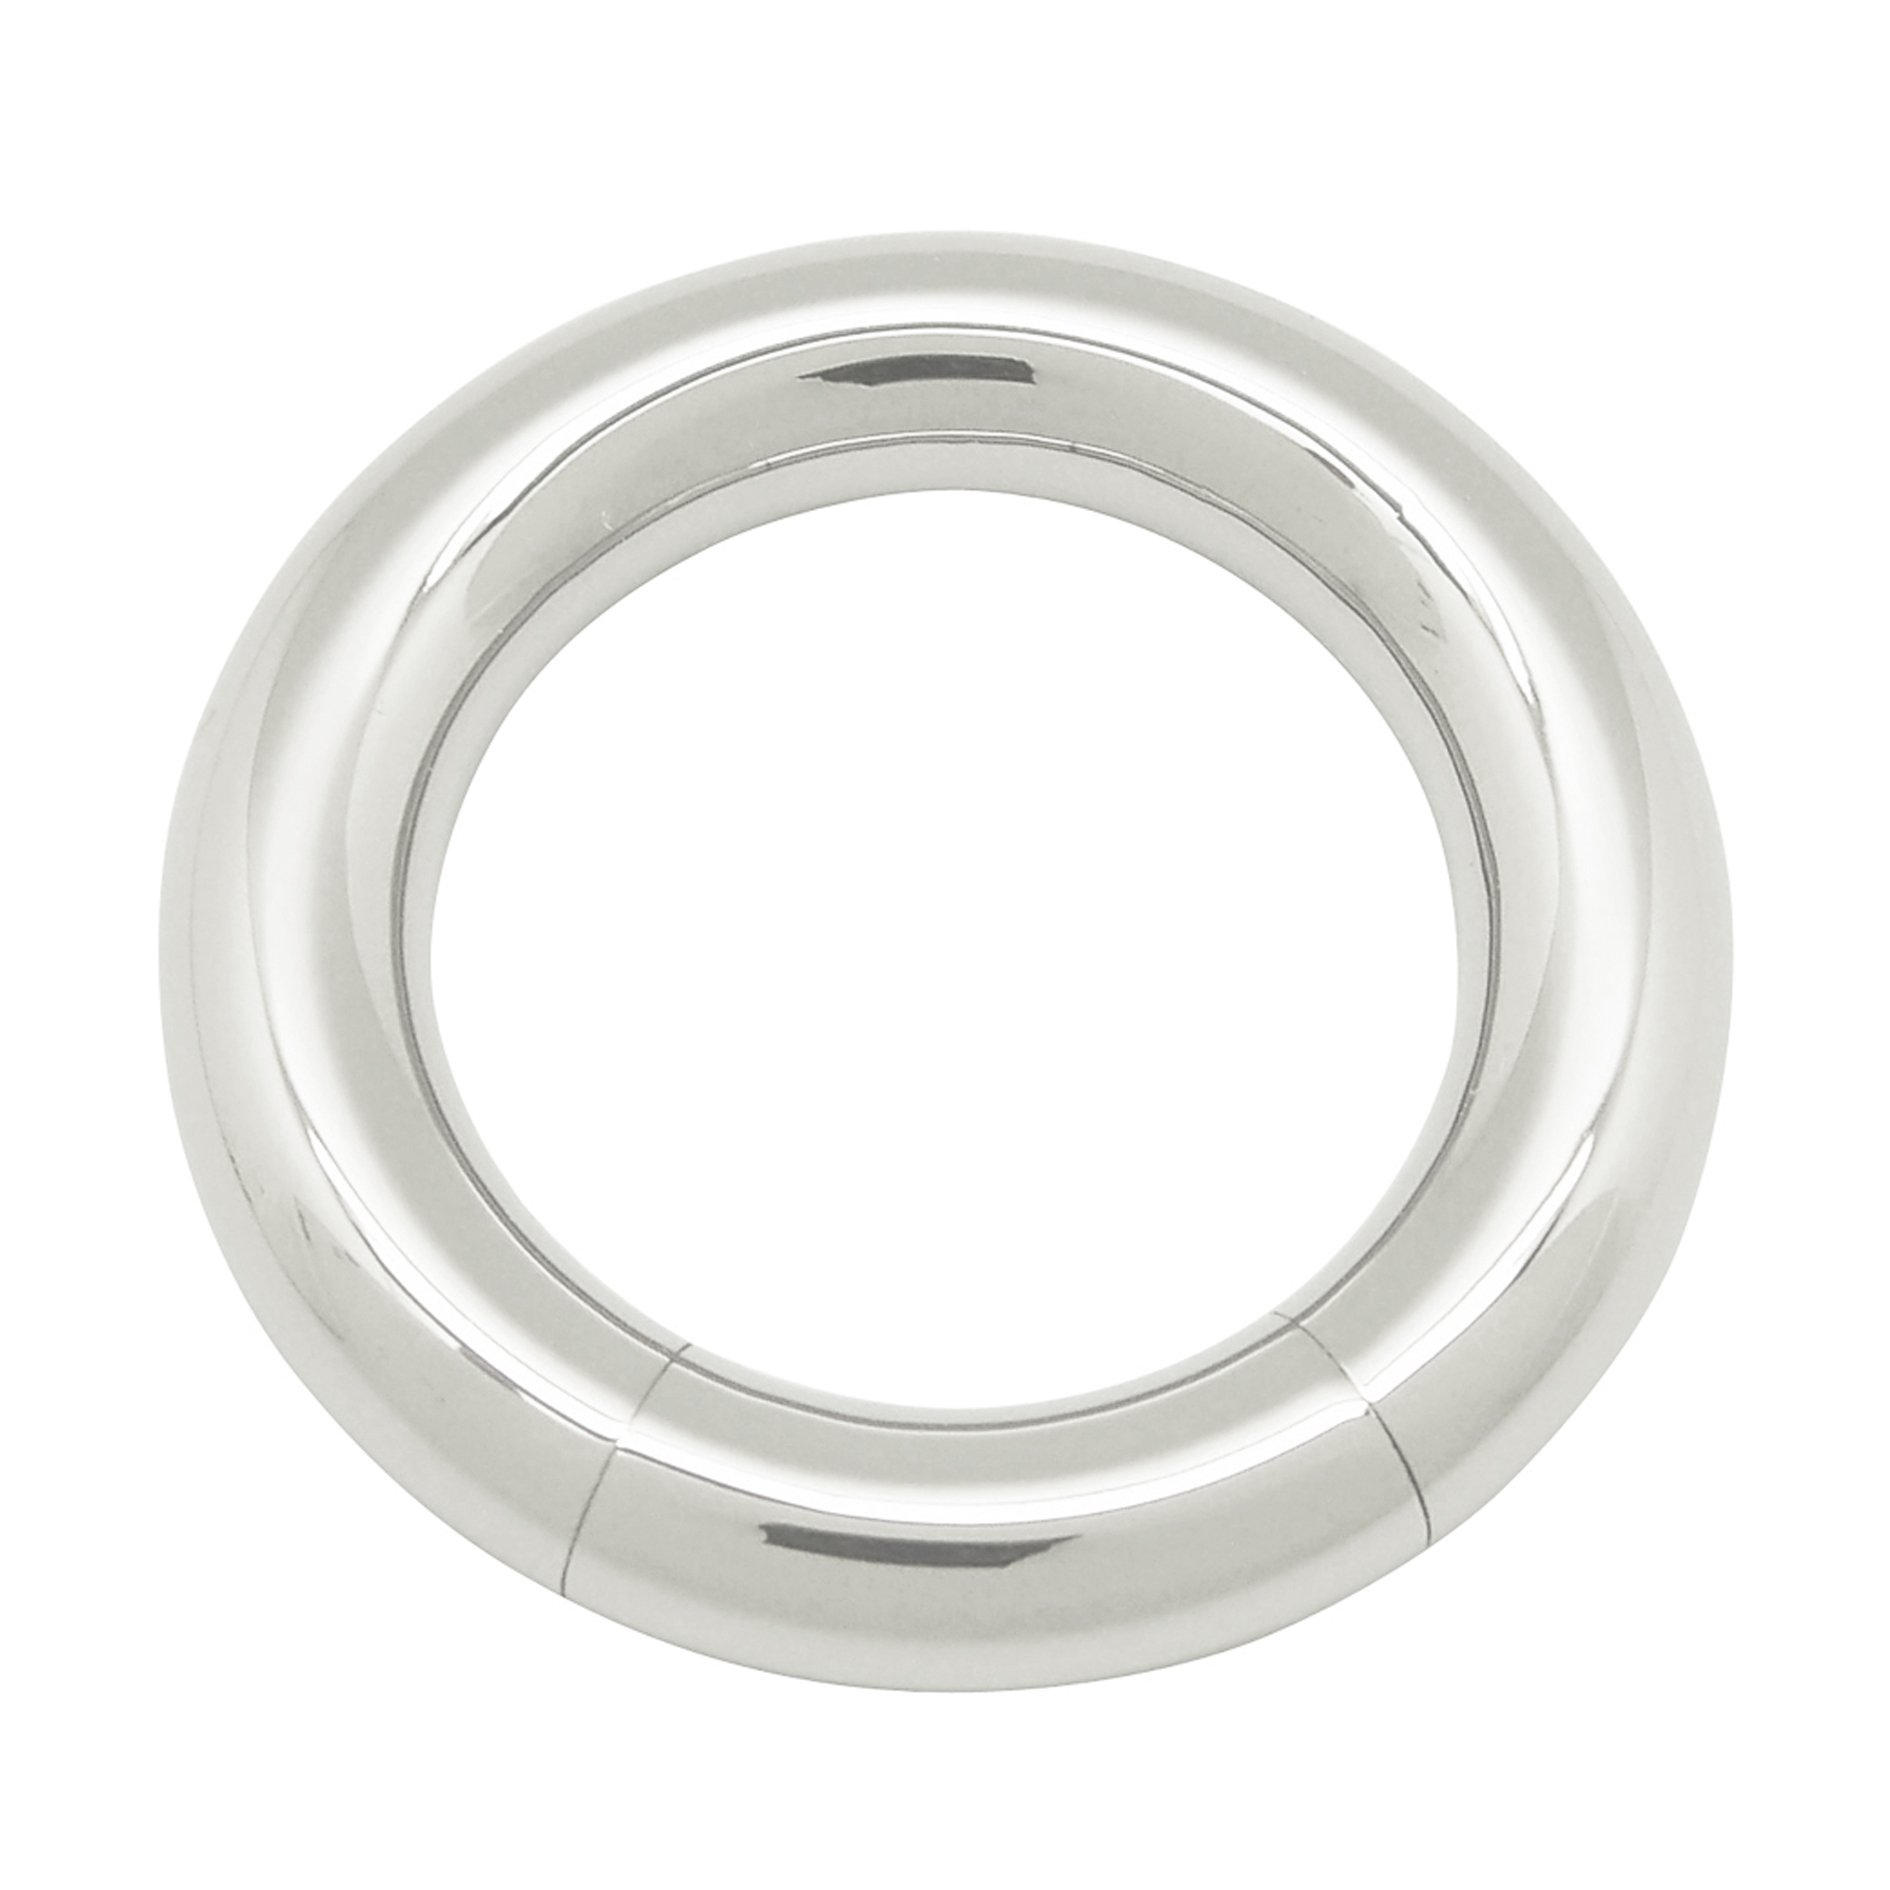 ACECHANNEL G2 Titanium Body Piercing Segment Hoop Rings (5019)